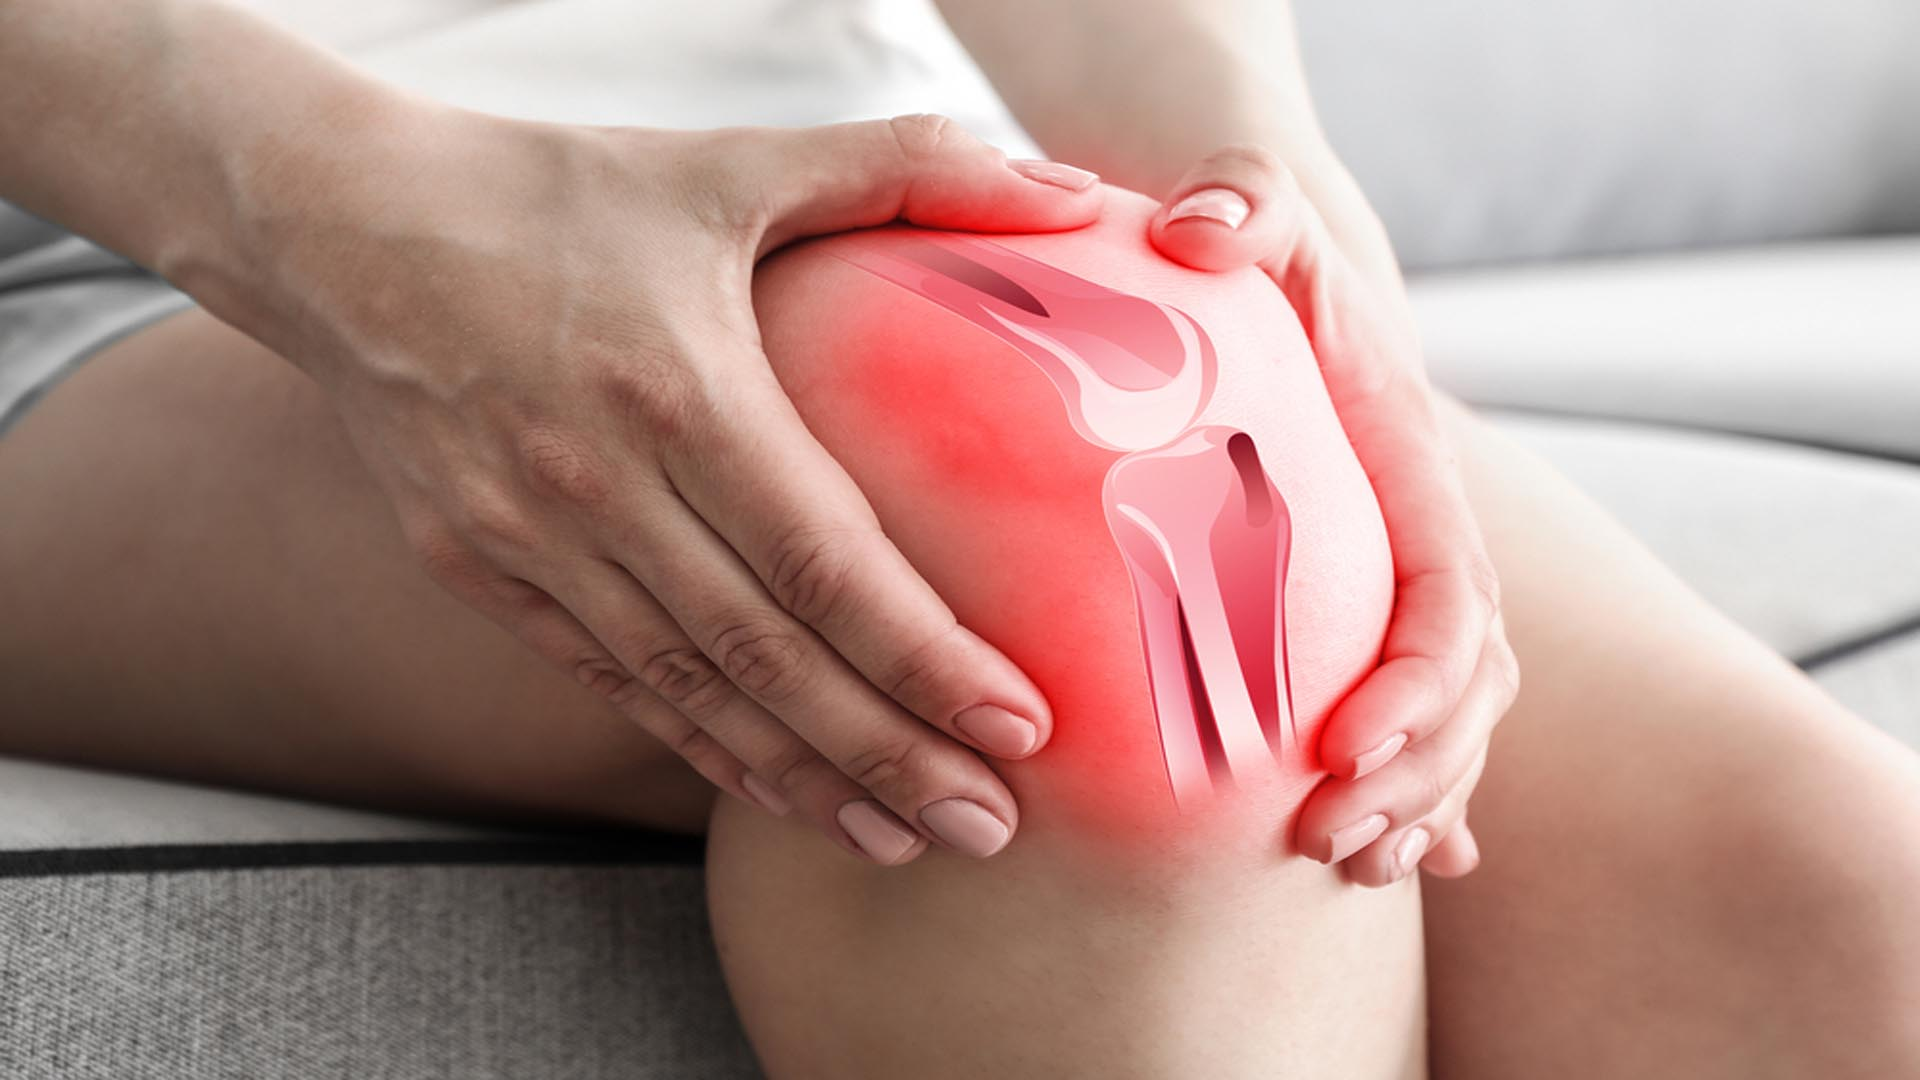 Woman Sufferting Knee Pain-Henry Chiropractic - 1602 N 9th Ave Pensacola, FL 32503 United States - (850) 435-7777